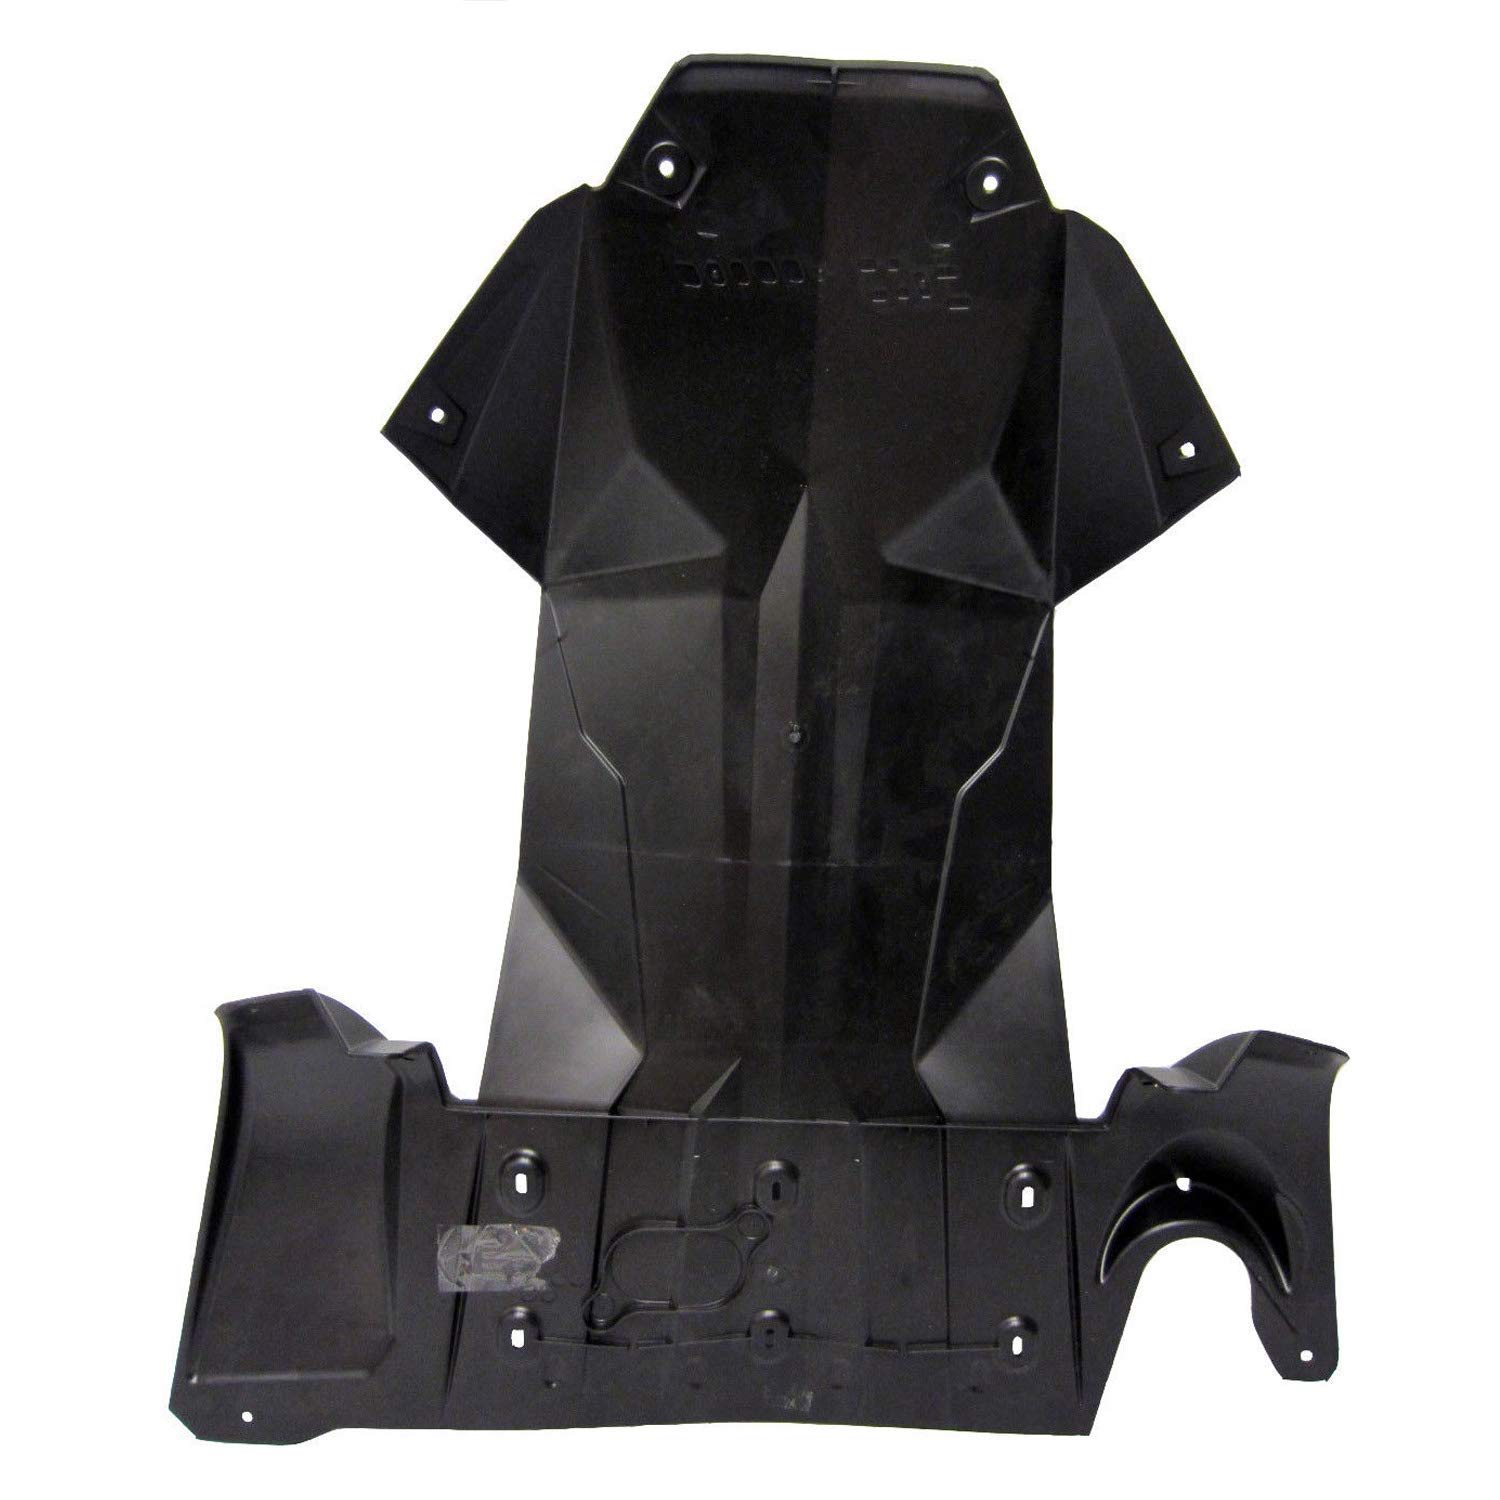 Ski-Doo 860200605 Full Body Skid Plate